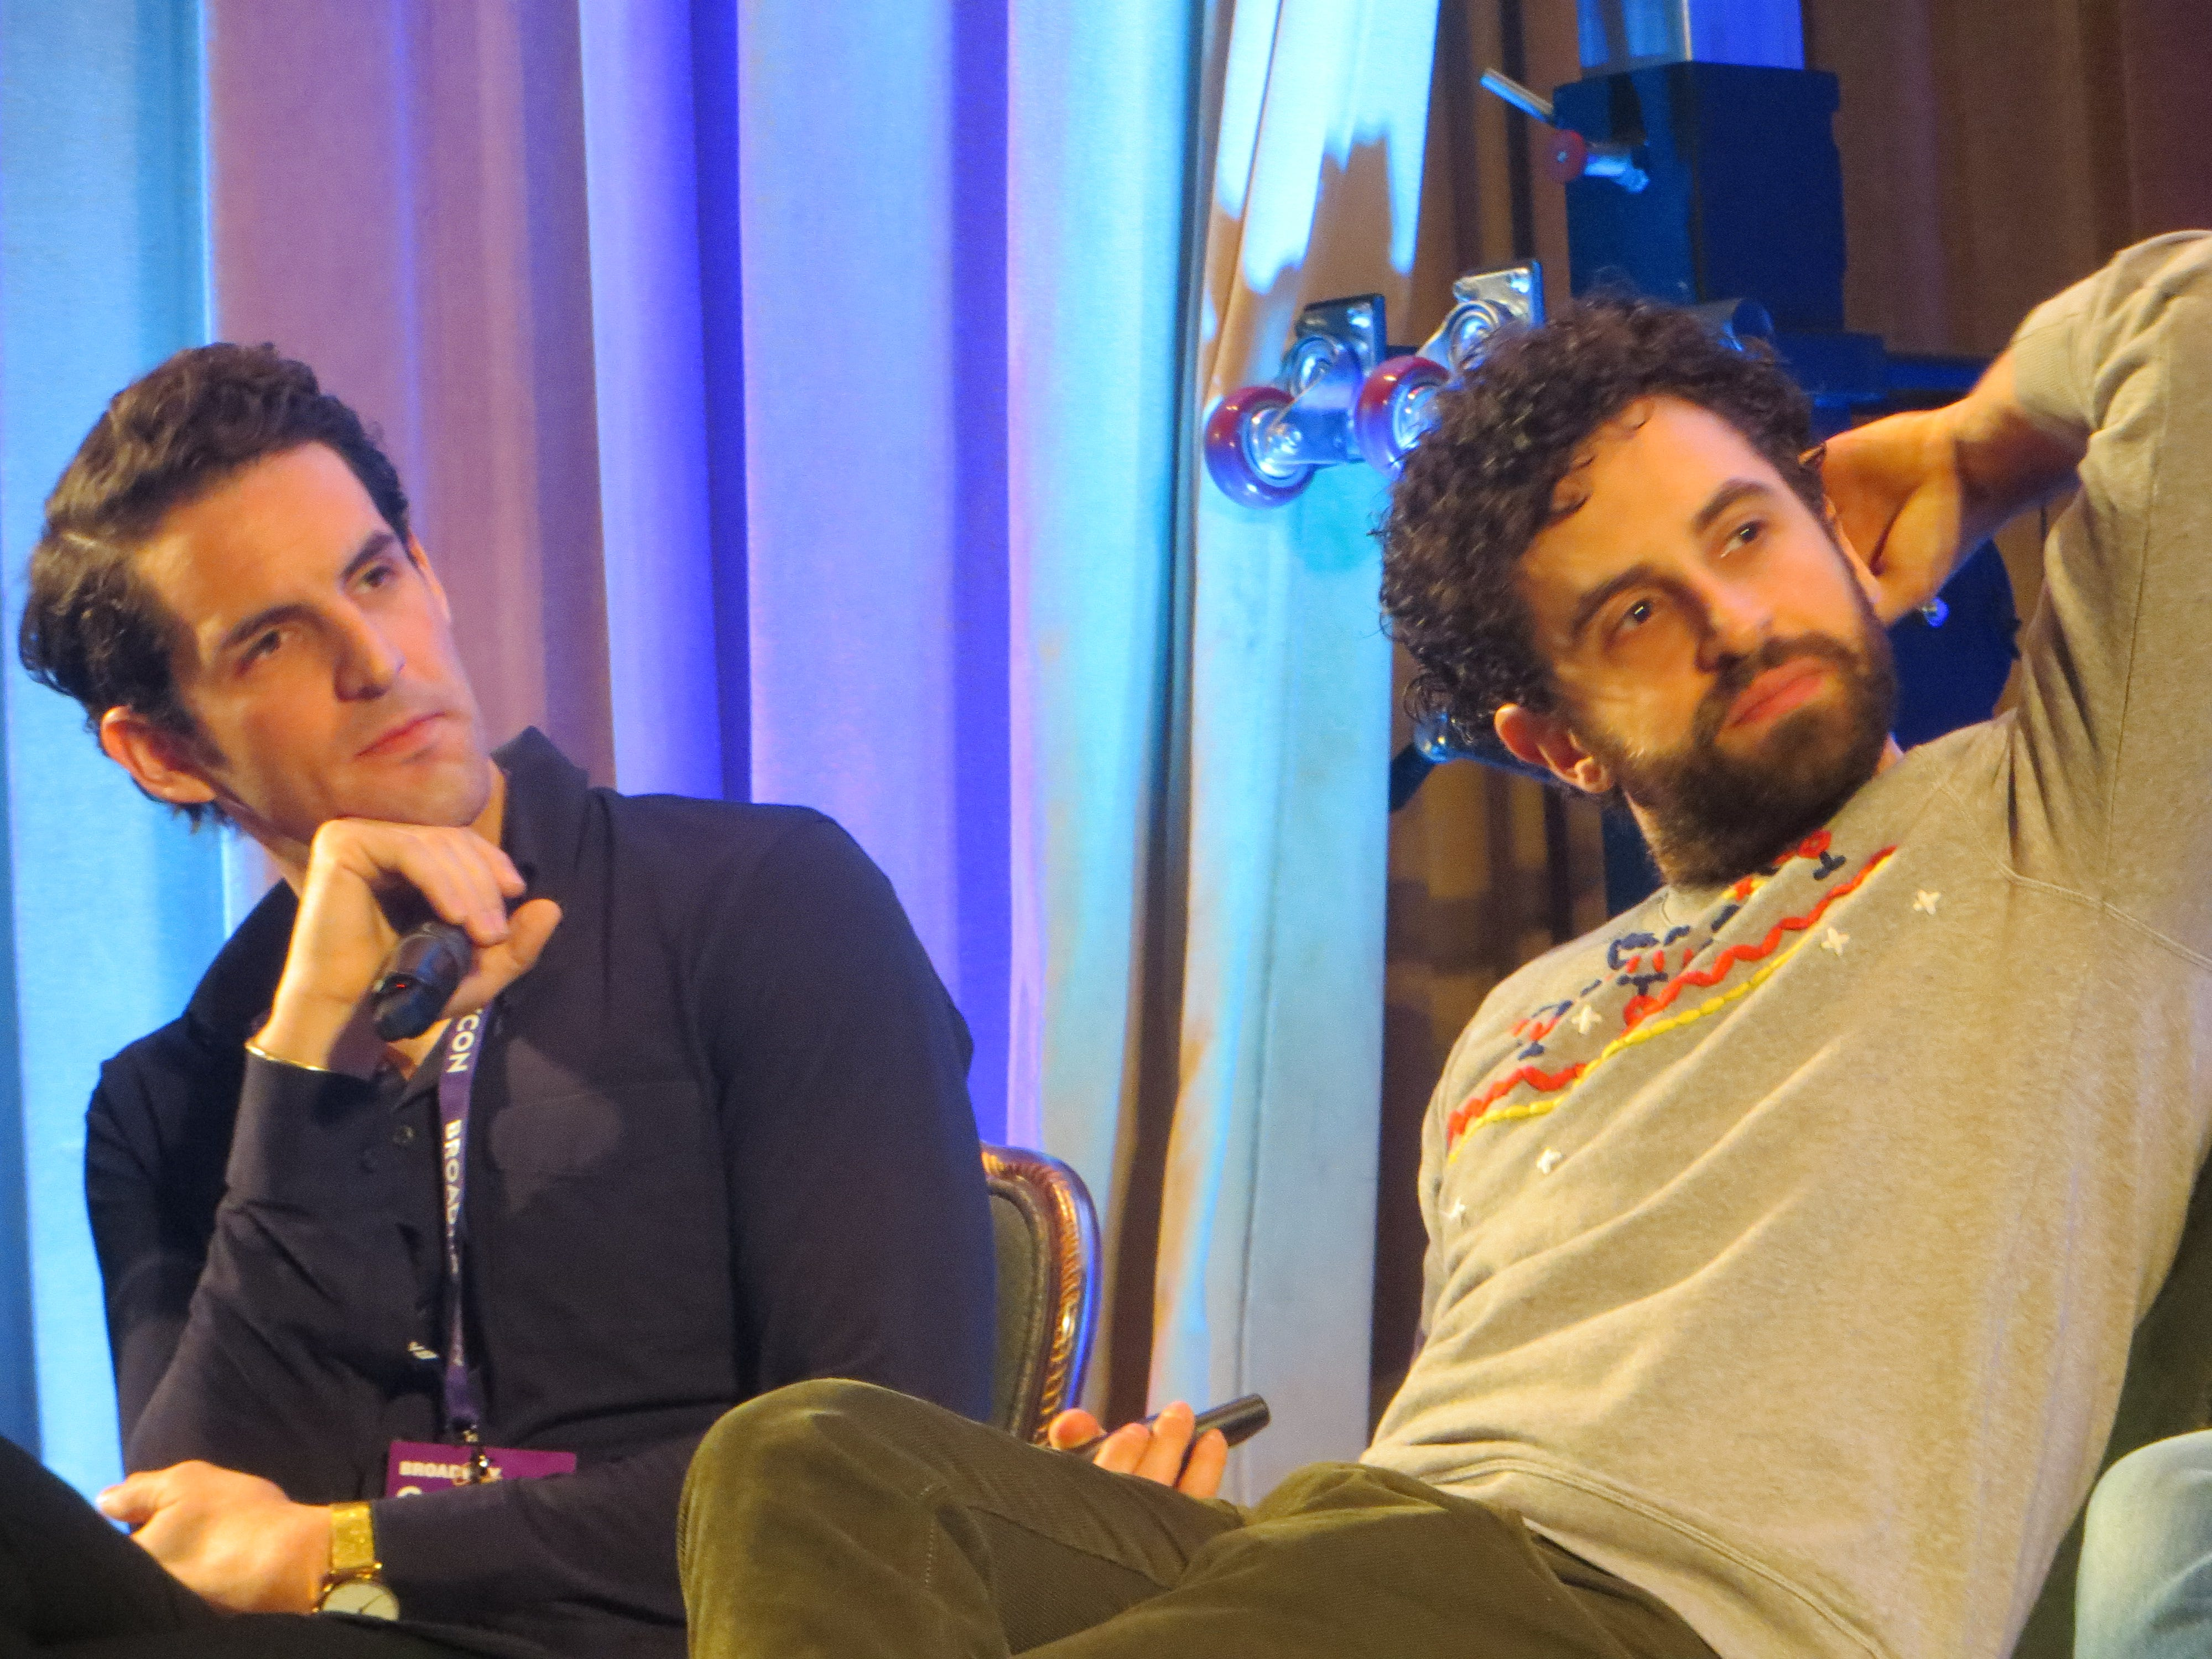 John Riddle and Brandon Uranowitz listen during the Out on Broadway panel at BroadwayCon 2019, held Jan. 11 to 13, 2019, at the New York Hilton Midtown in Manhattan.